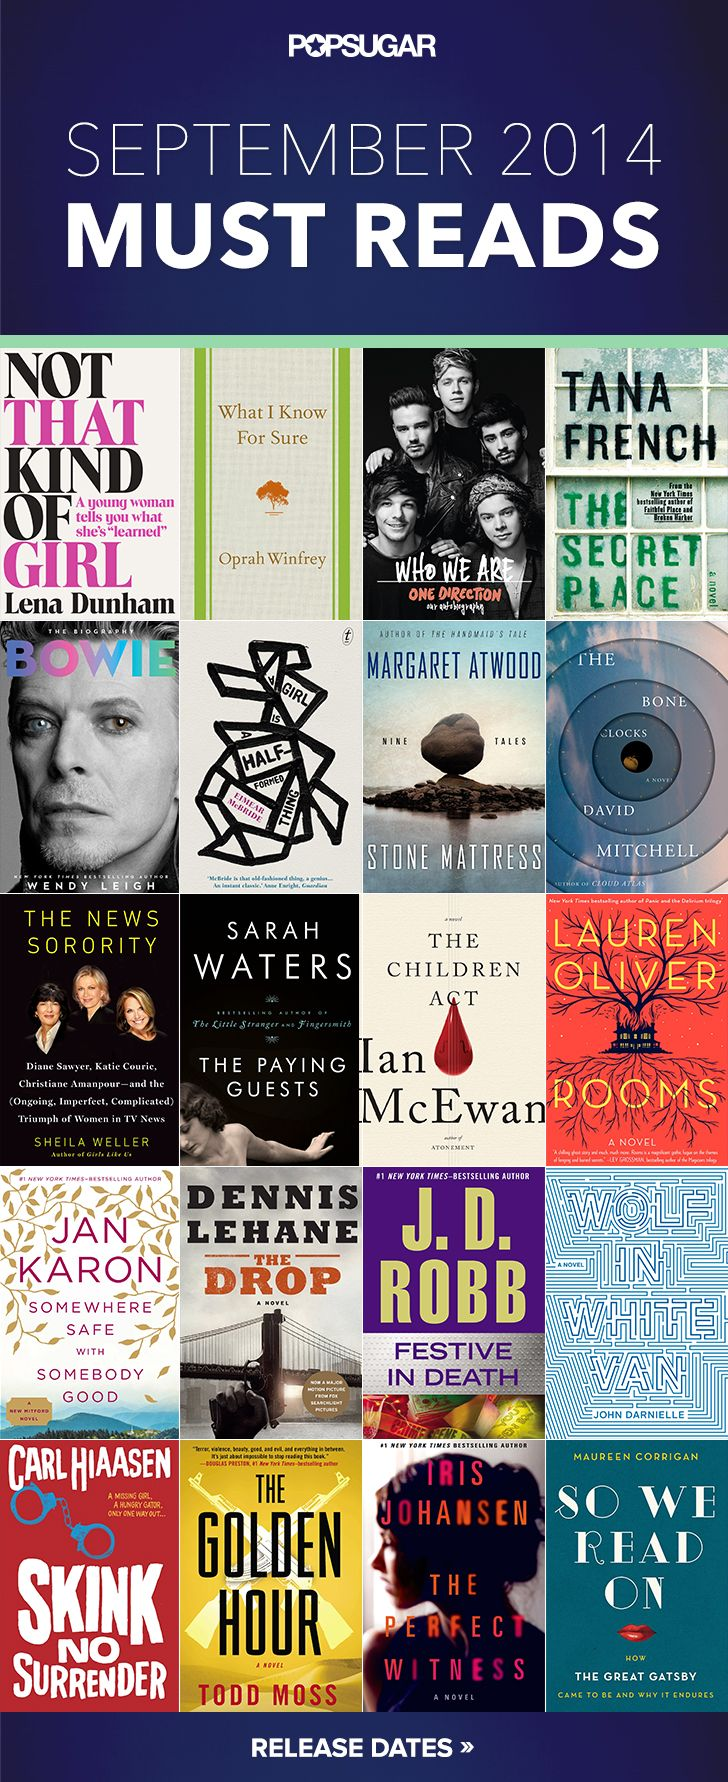 Check out the best and most exciting books hitting shelves this month!